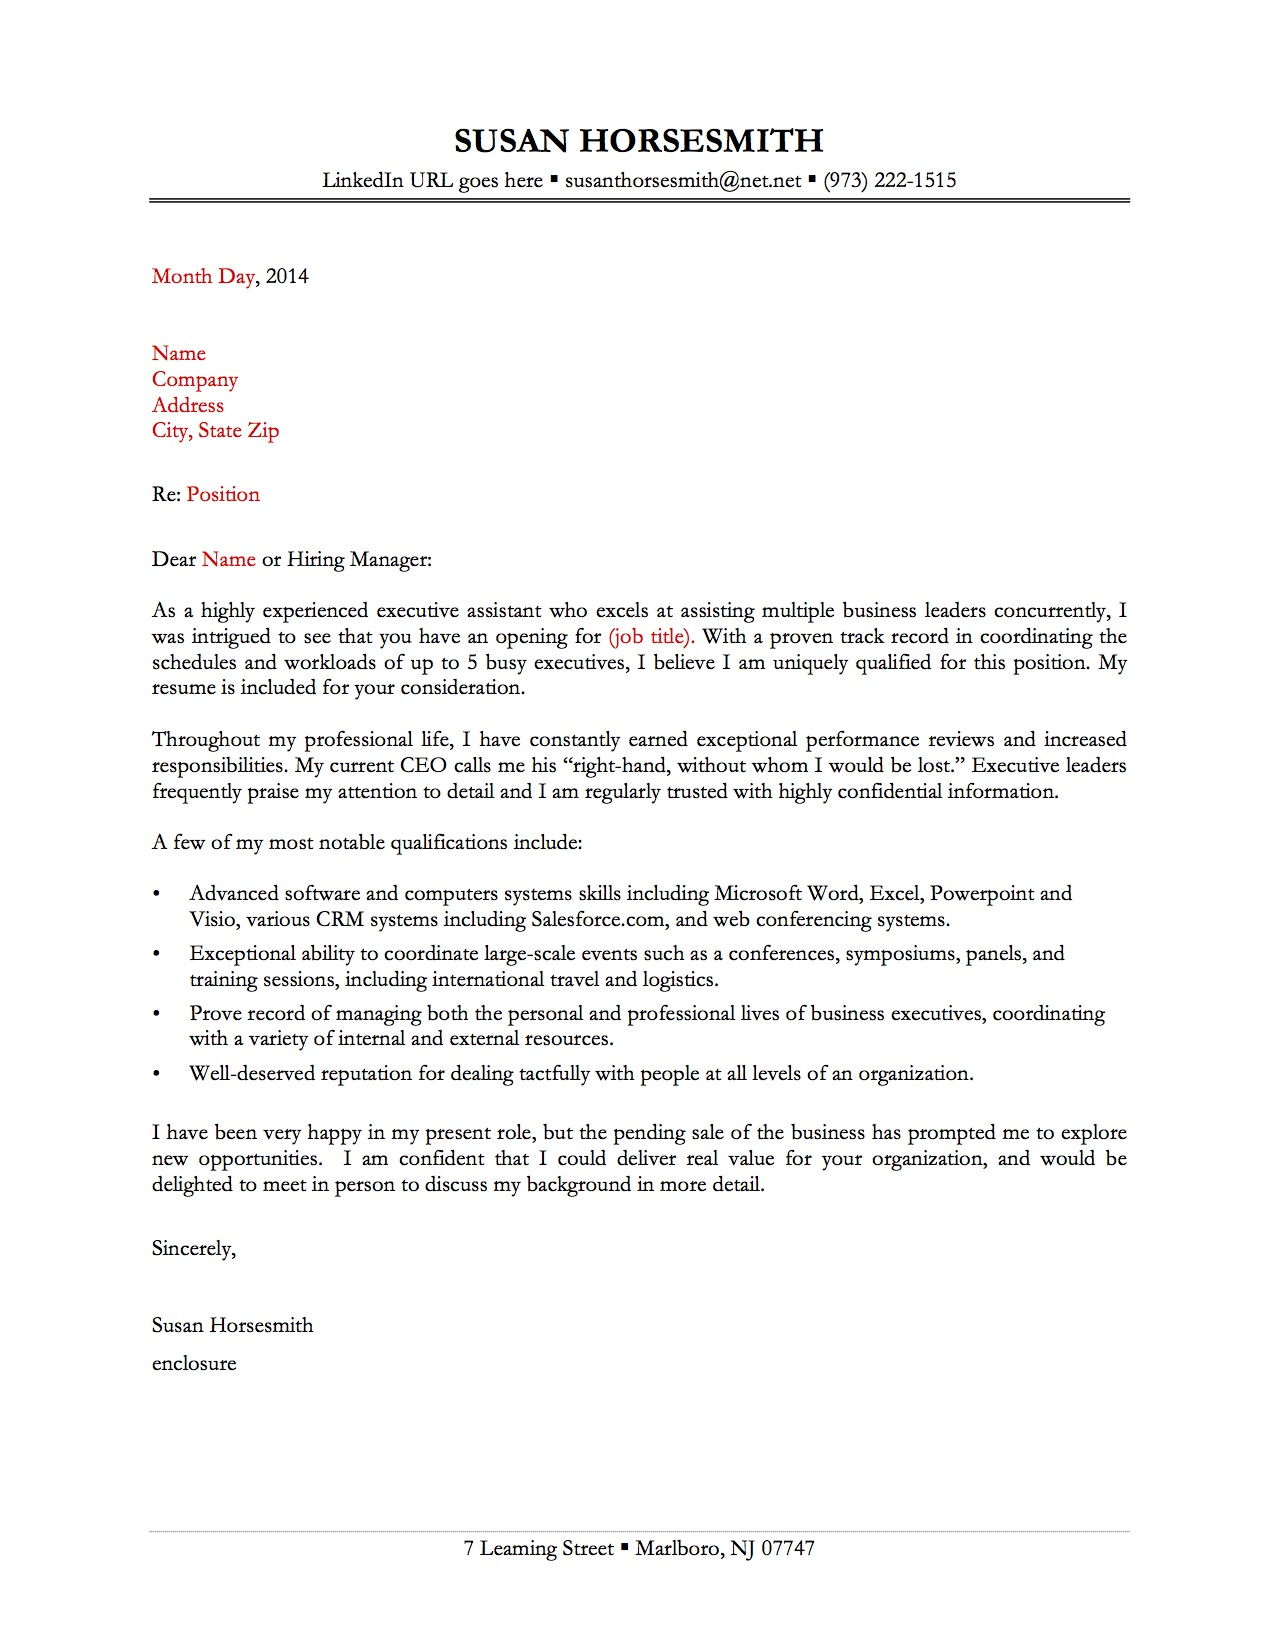 Cover Letter Example Administrative Assistant  Cover Letters For Administrative Assistant Positions